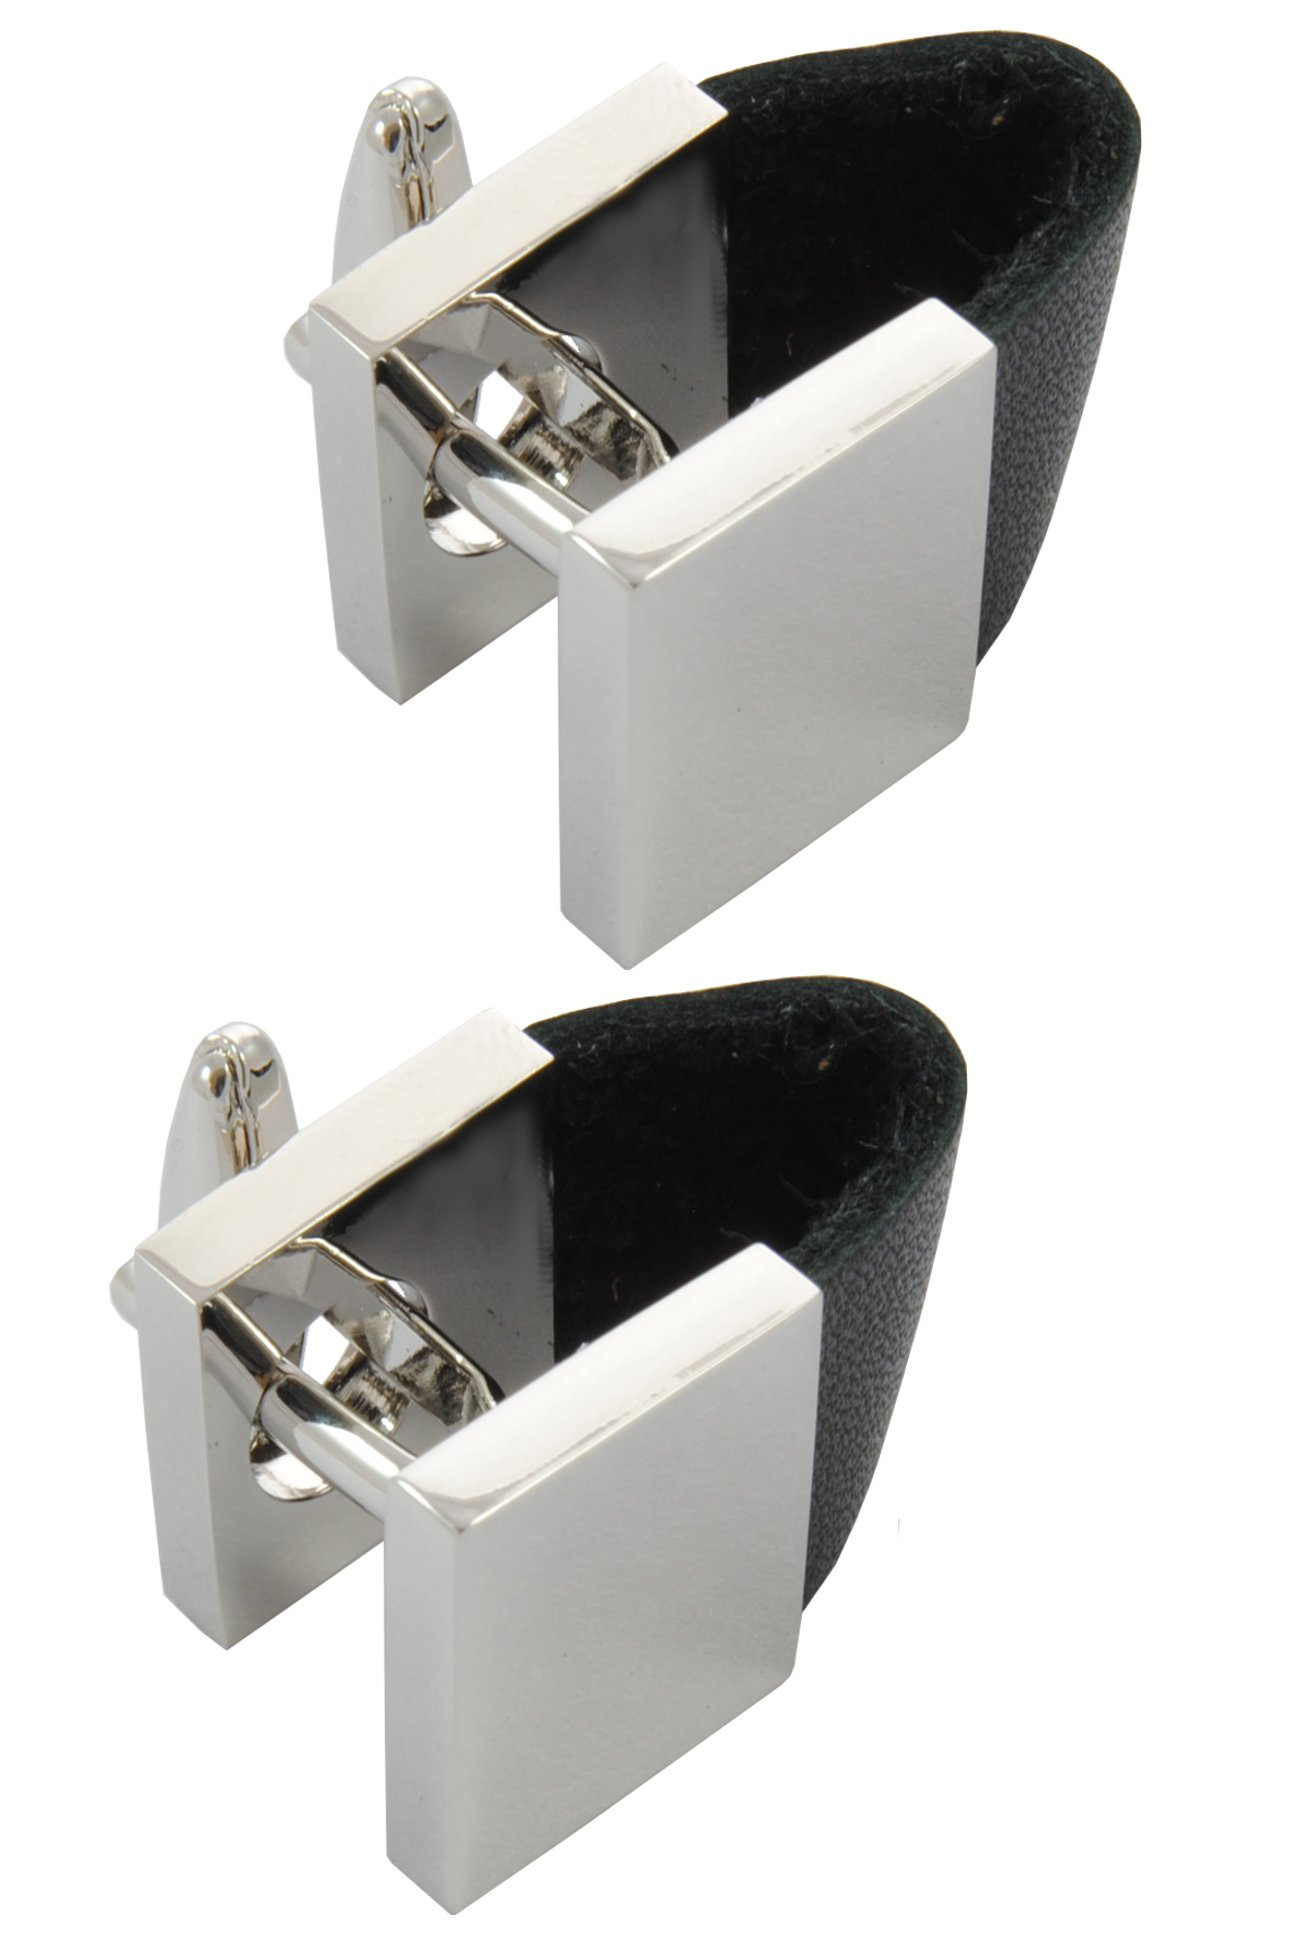 COLLAR AND CUFFS LONDON - Premium Cufflinks with Gift Box - Unusual Leatherette Strap and Square Wrap Around - Silver and Black Colours